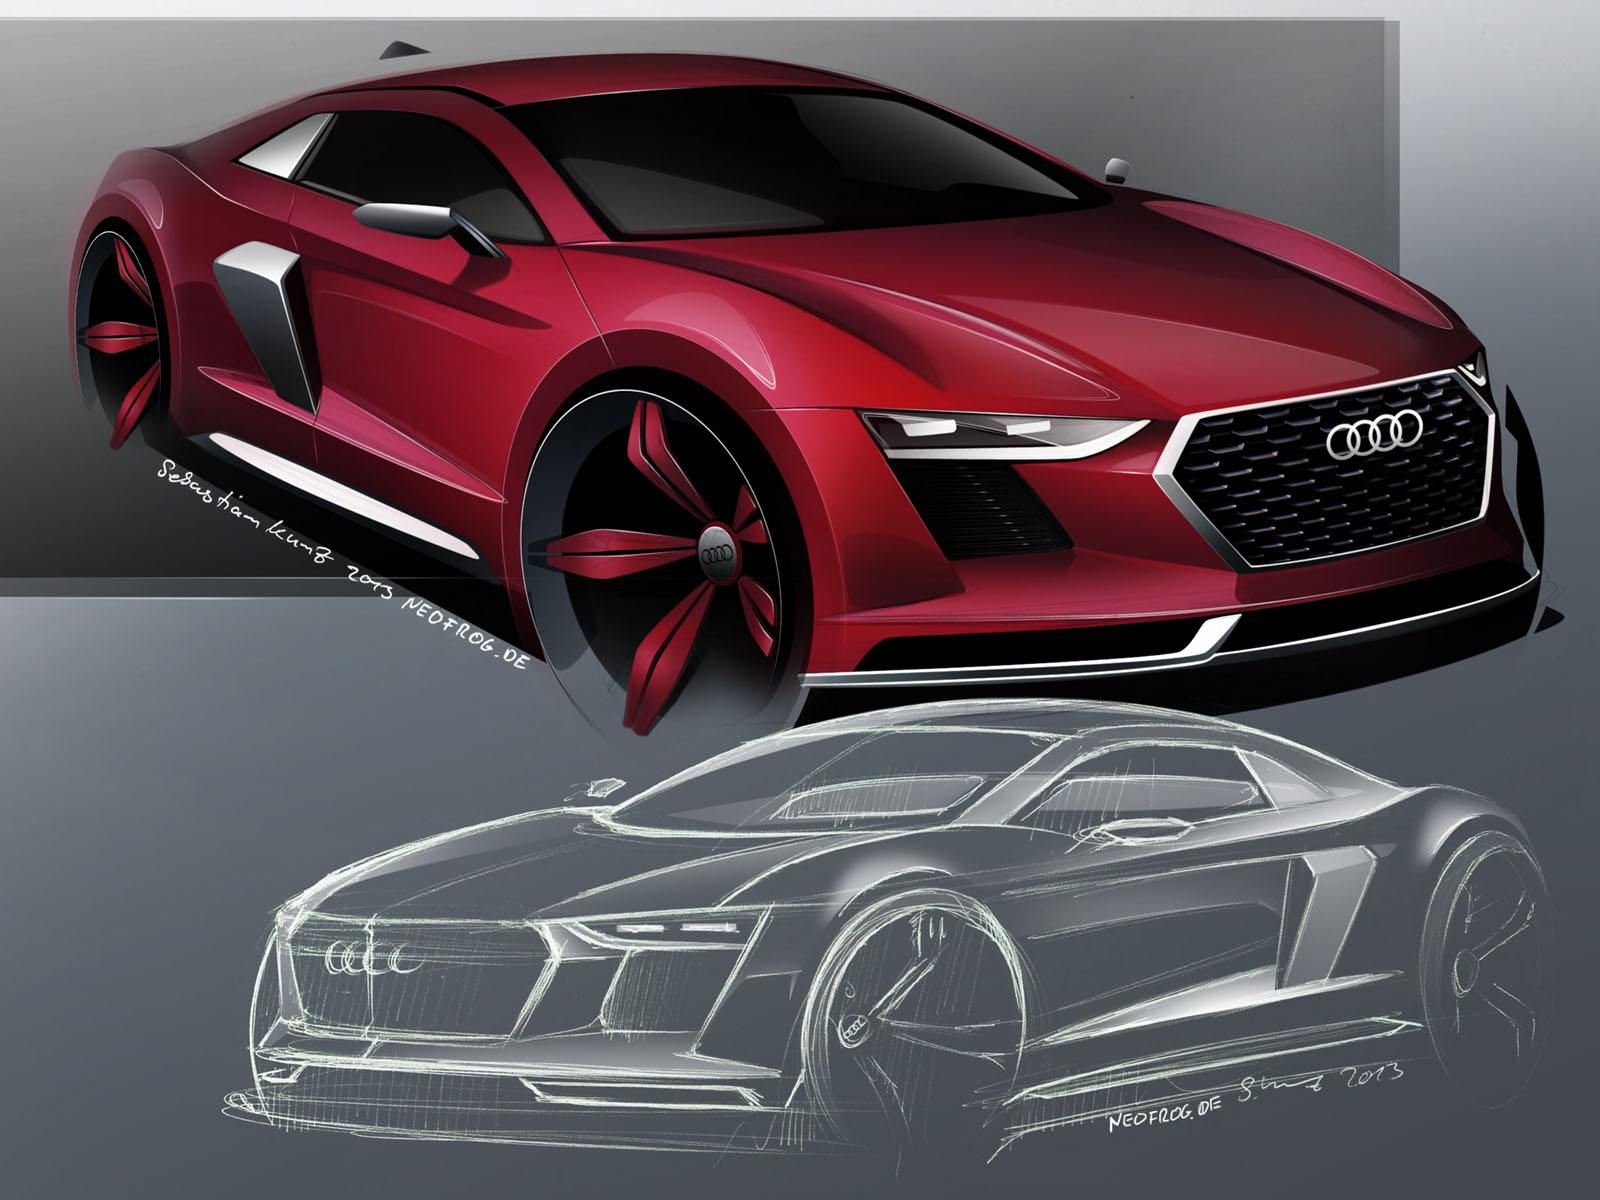 Revised 2017 Audi R8 Envisioned